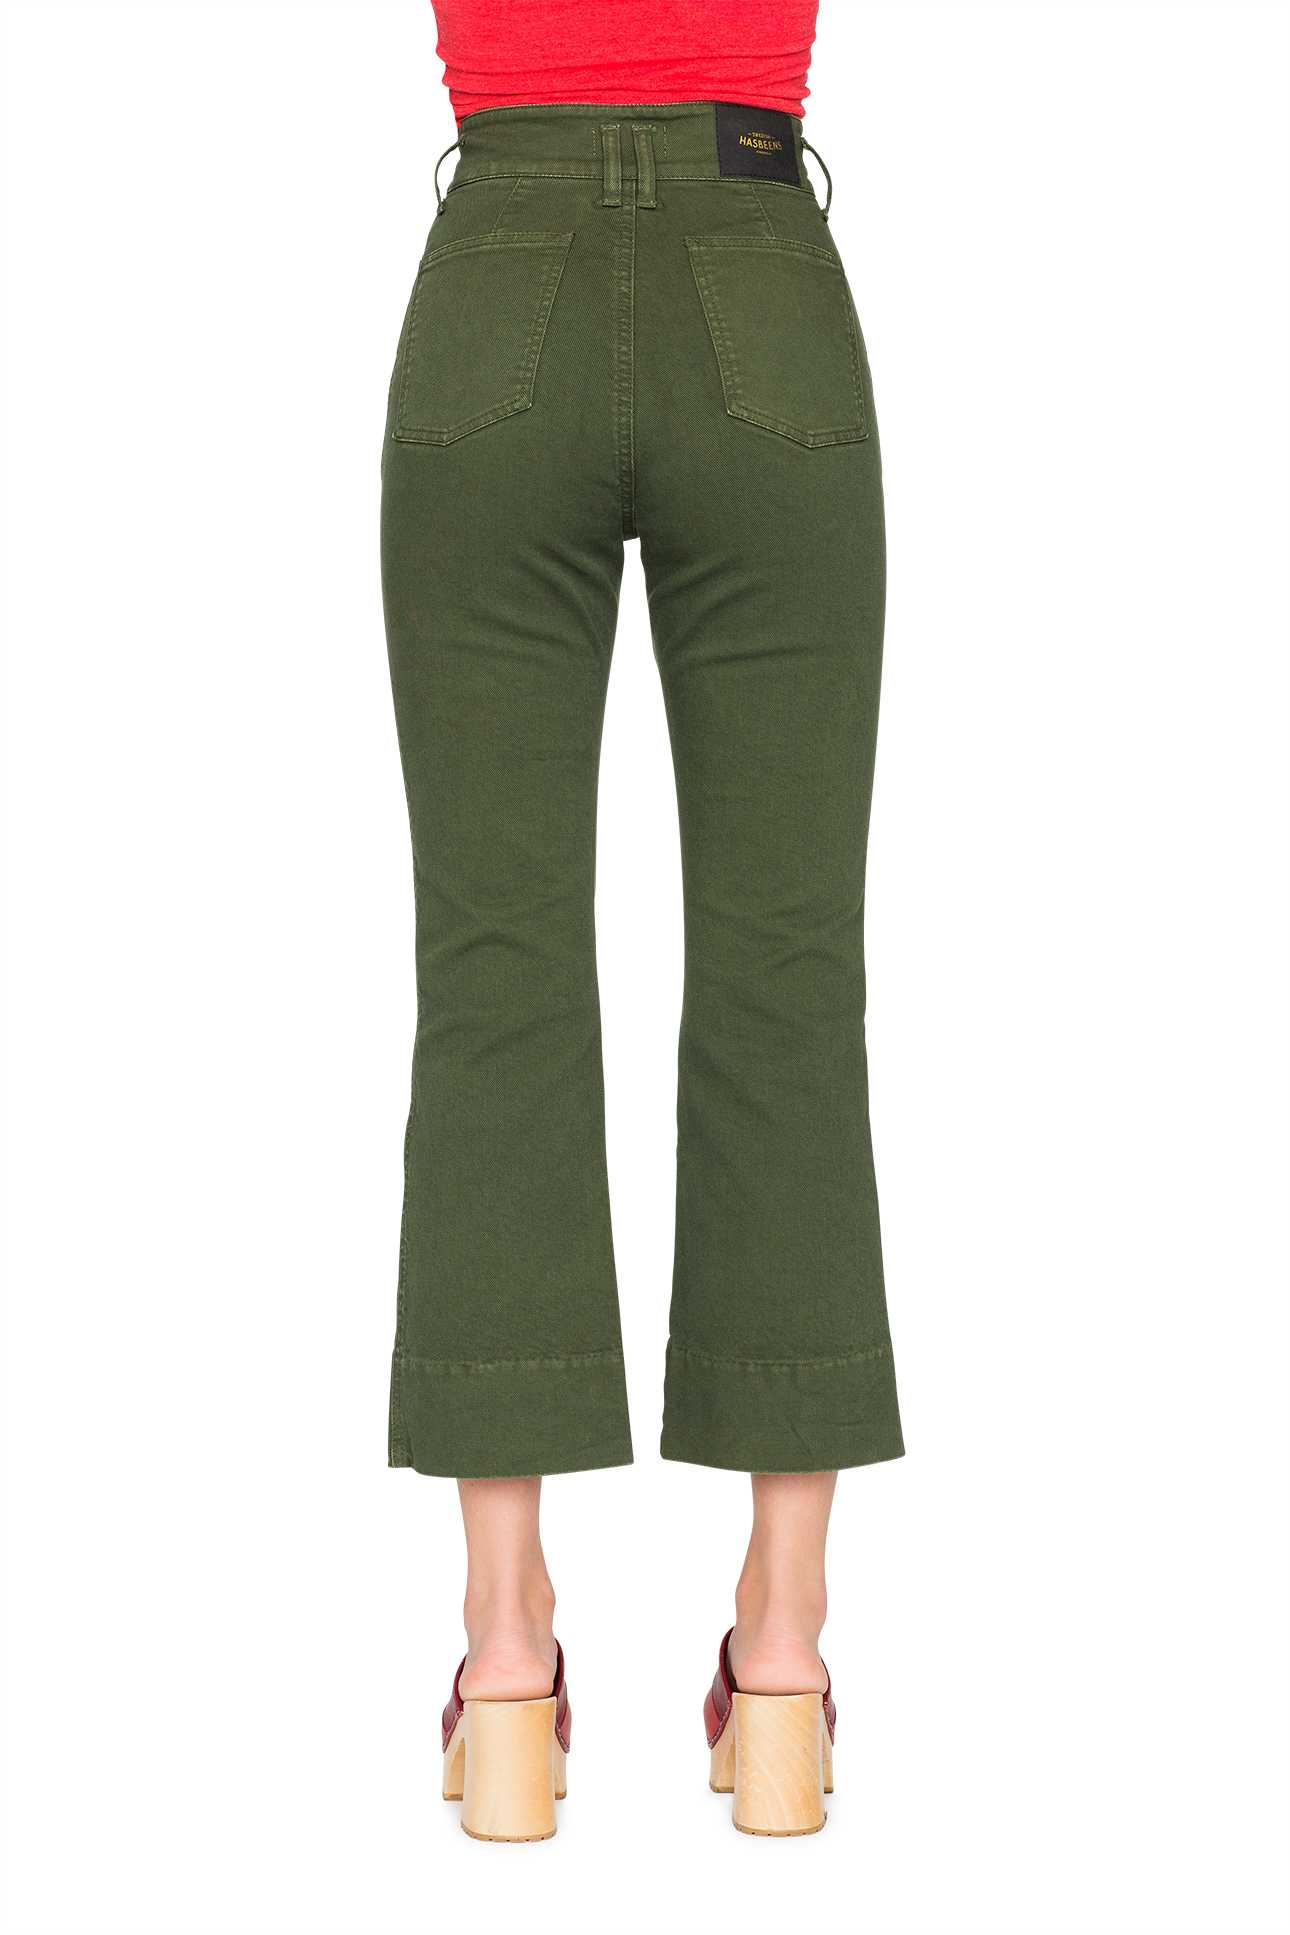 Short Boot Cut Pants Denim Military Green